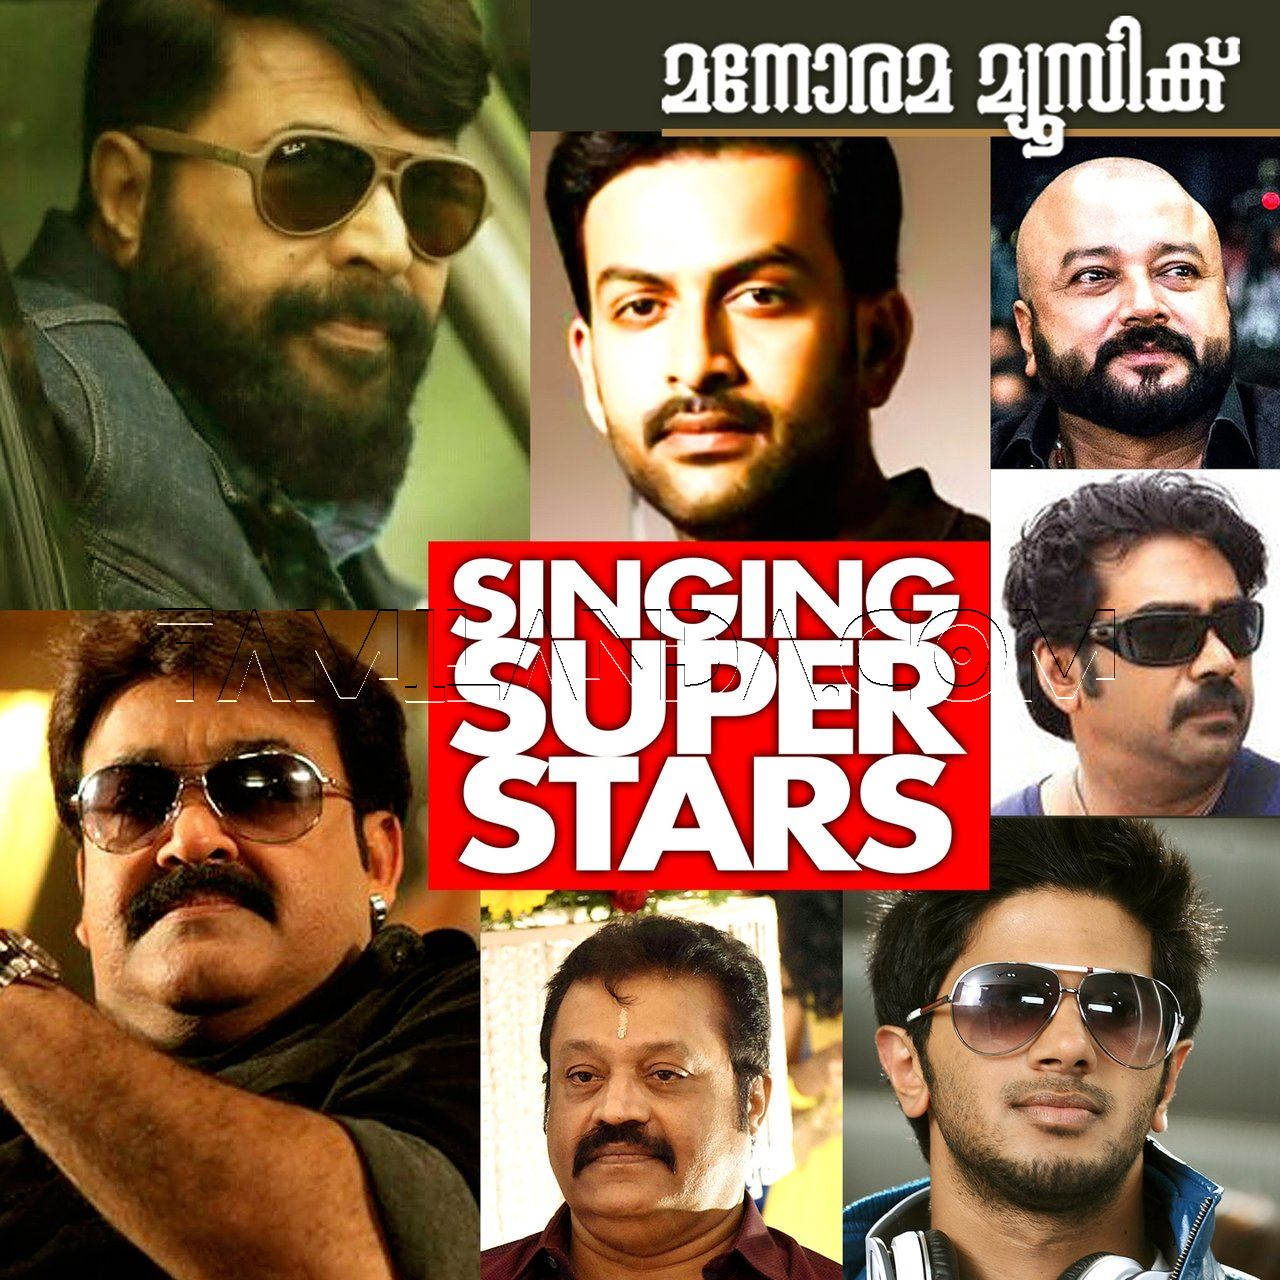 Singing Superstars (Sung by Malayalam Movie Superstars) FLAC Songs (2018)